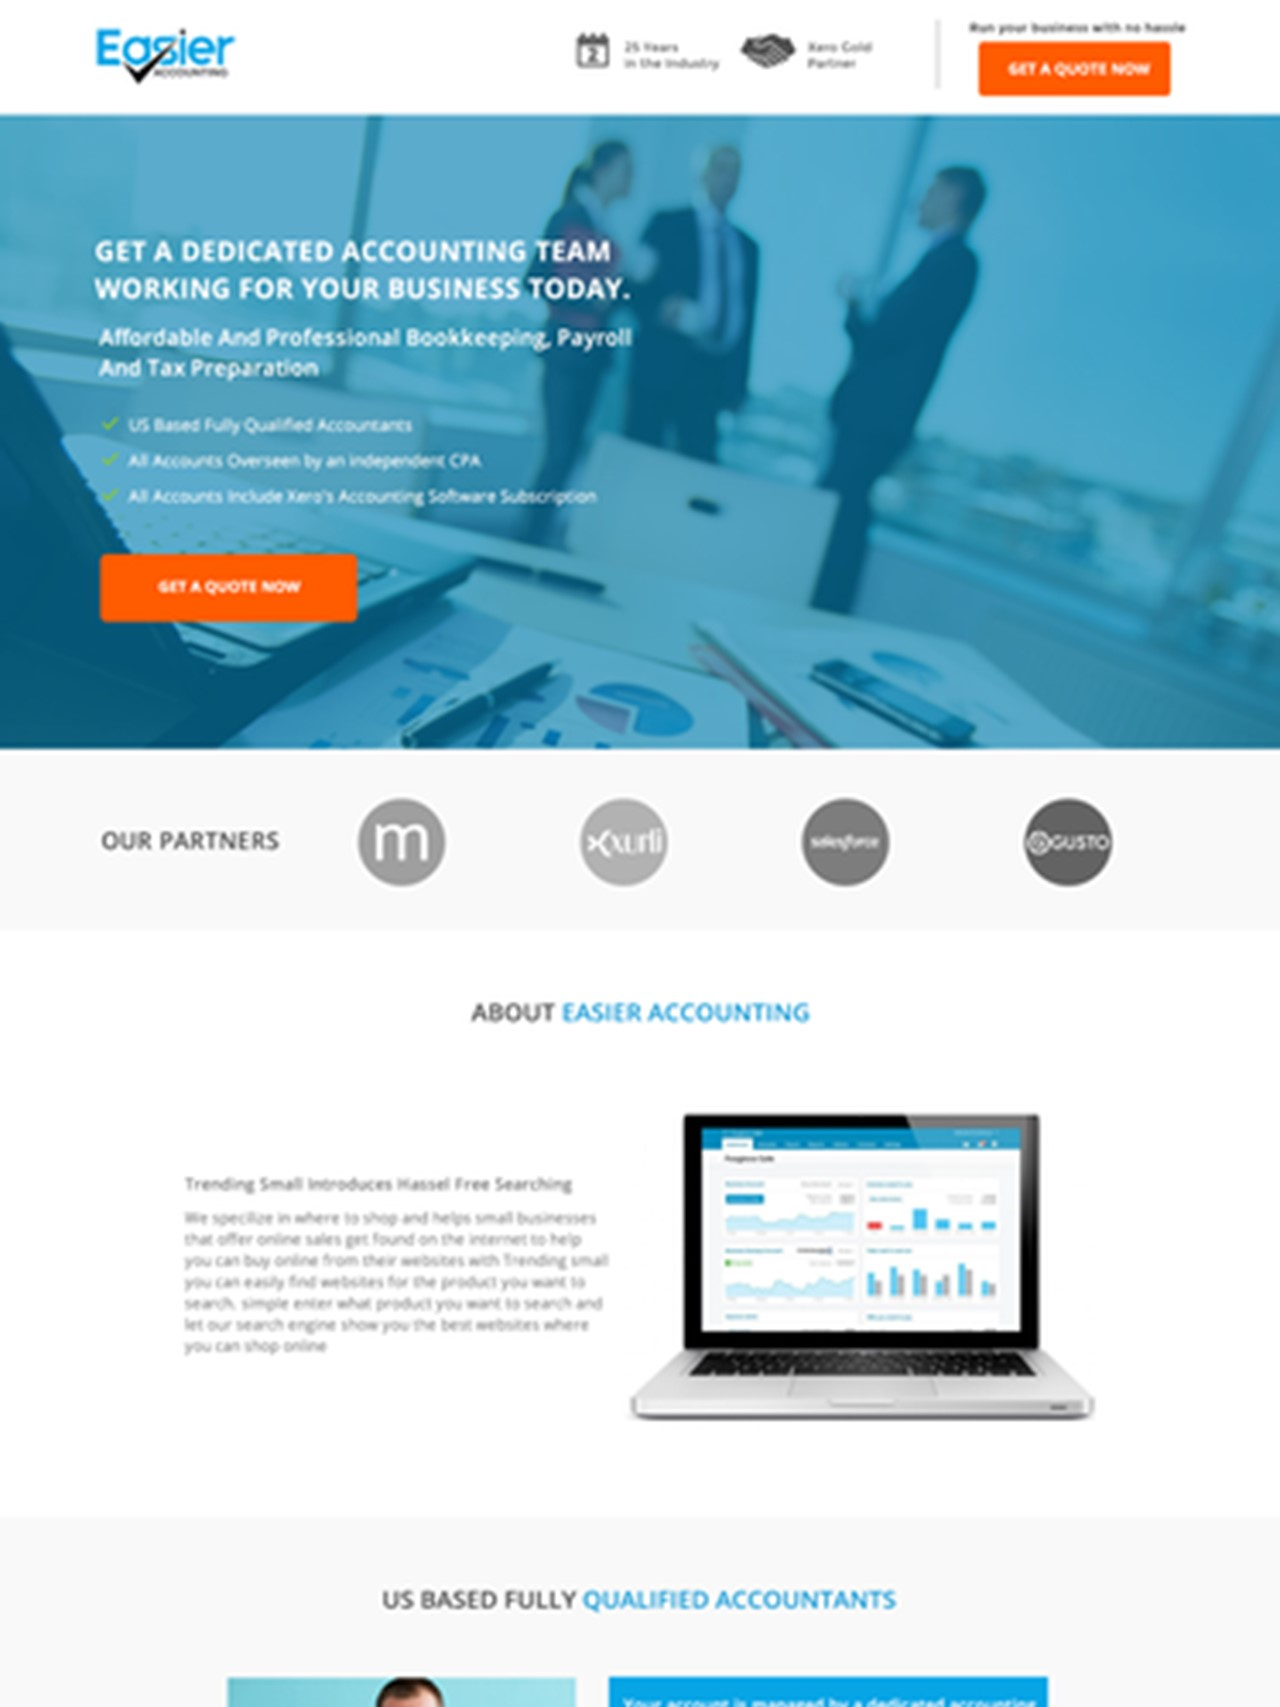 Accounting landing page Easier Accounting